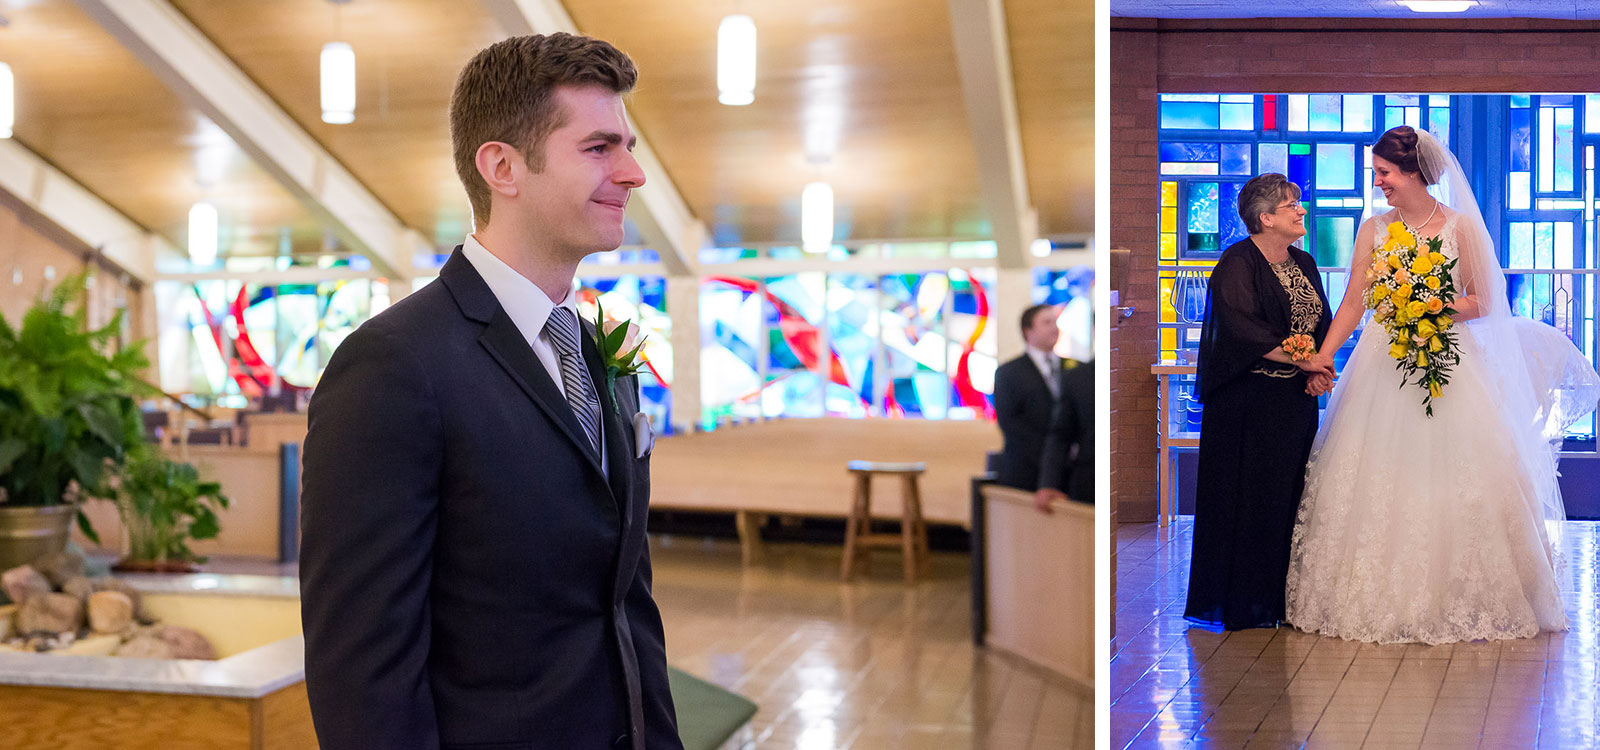 Eric_and_Christy_Photography_Blog_Wedding_Kelly_Michael-7-8